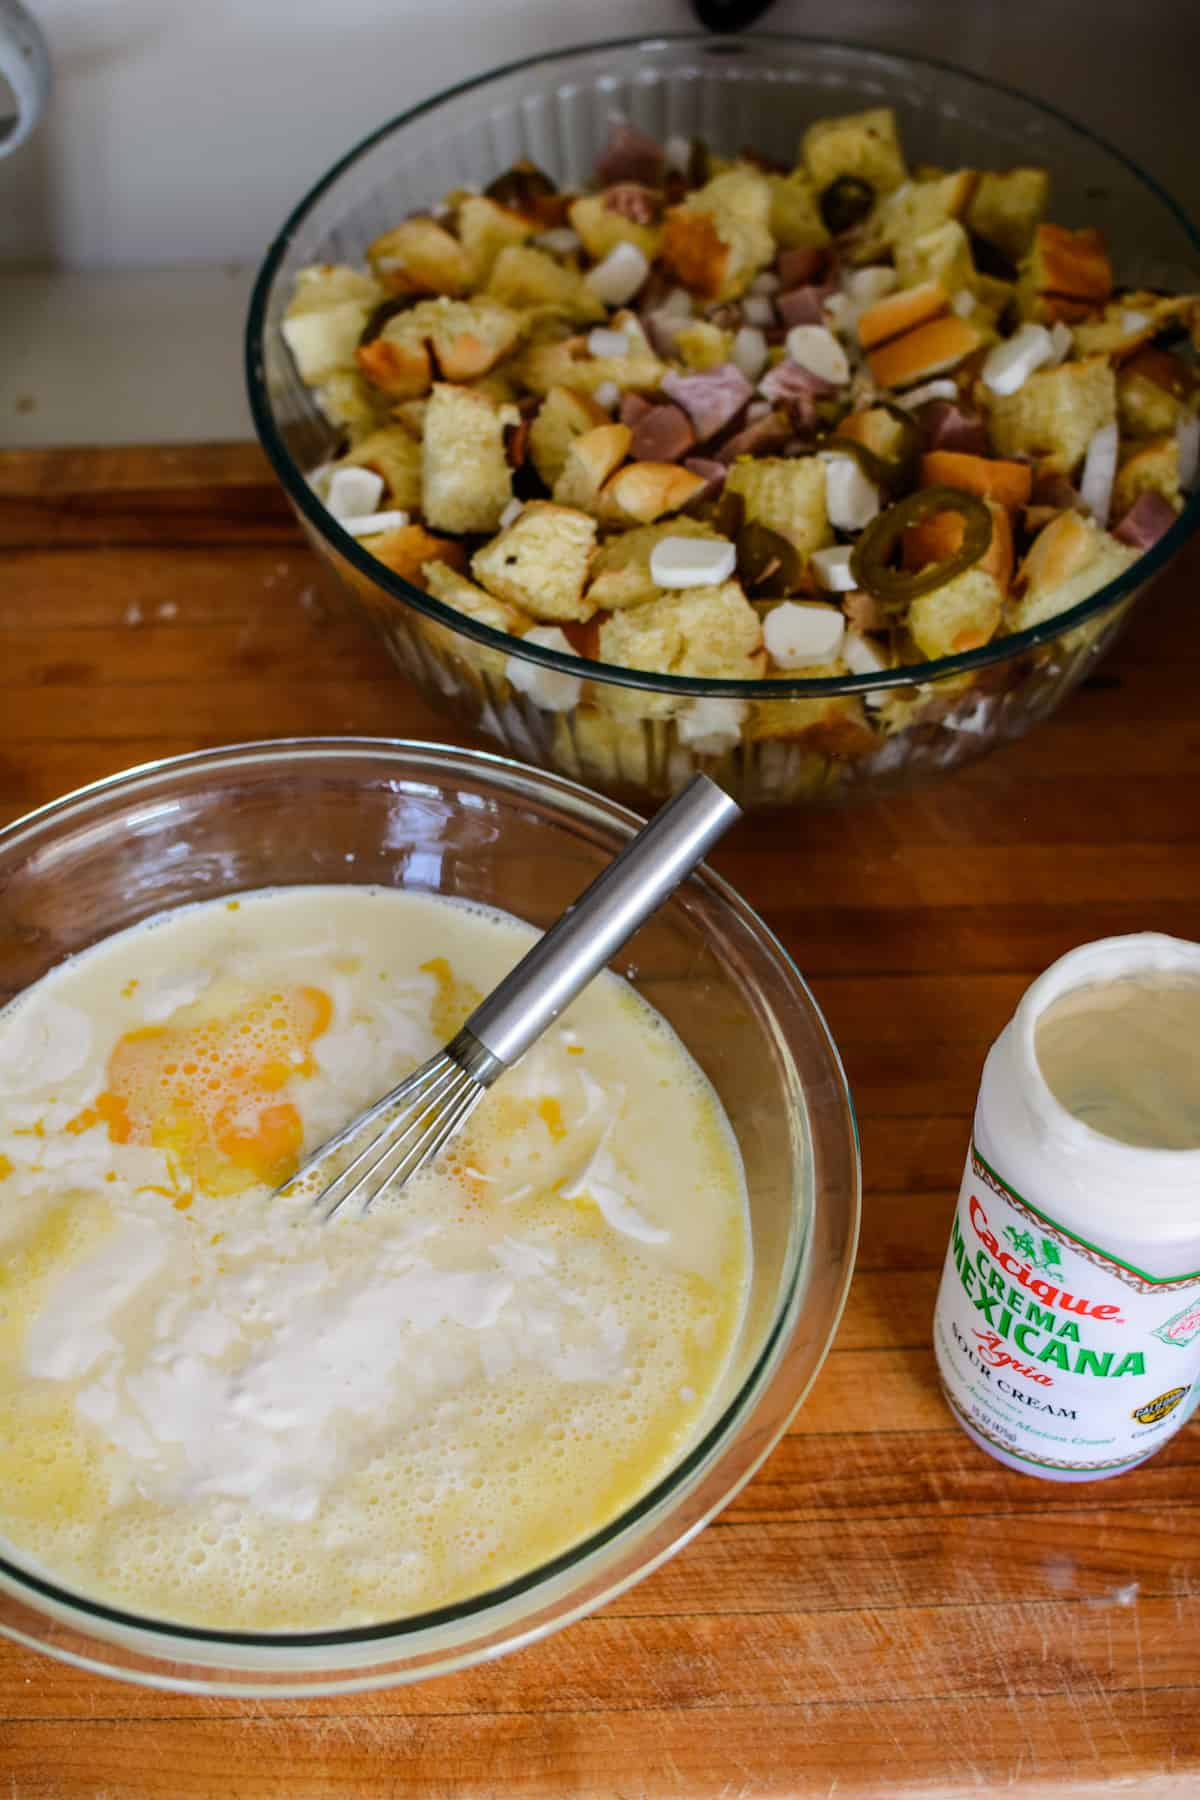 A large glass bowl with milk, eggs, and Mexican crema in it with a whisk in the bowl sitting on a wooden cutting board.